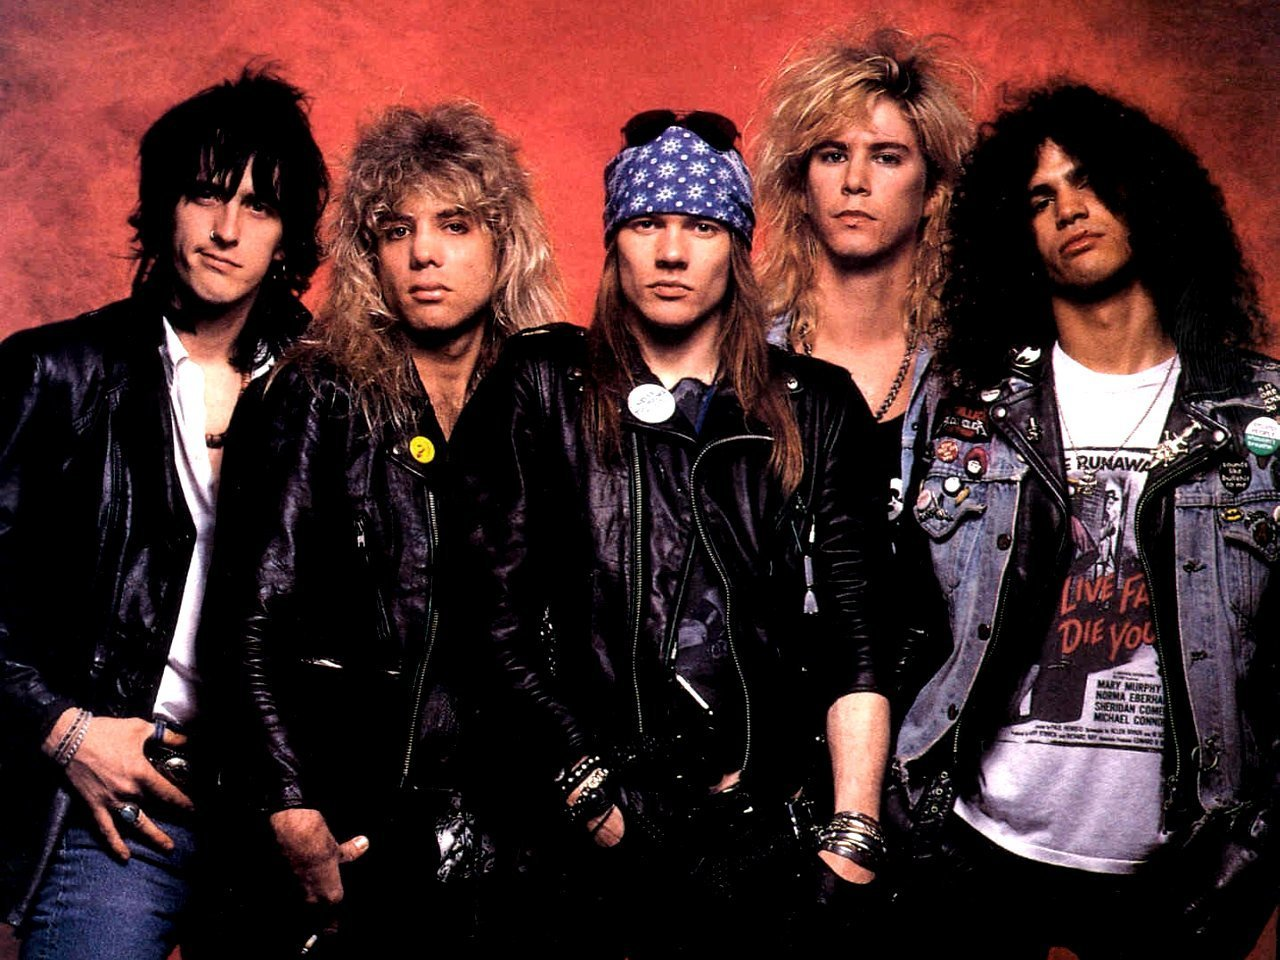 Sweet Child of Mine  - Guns and Roses